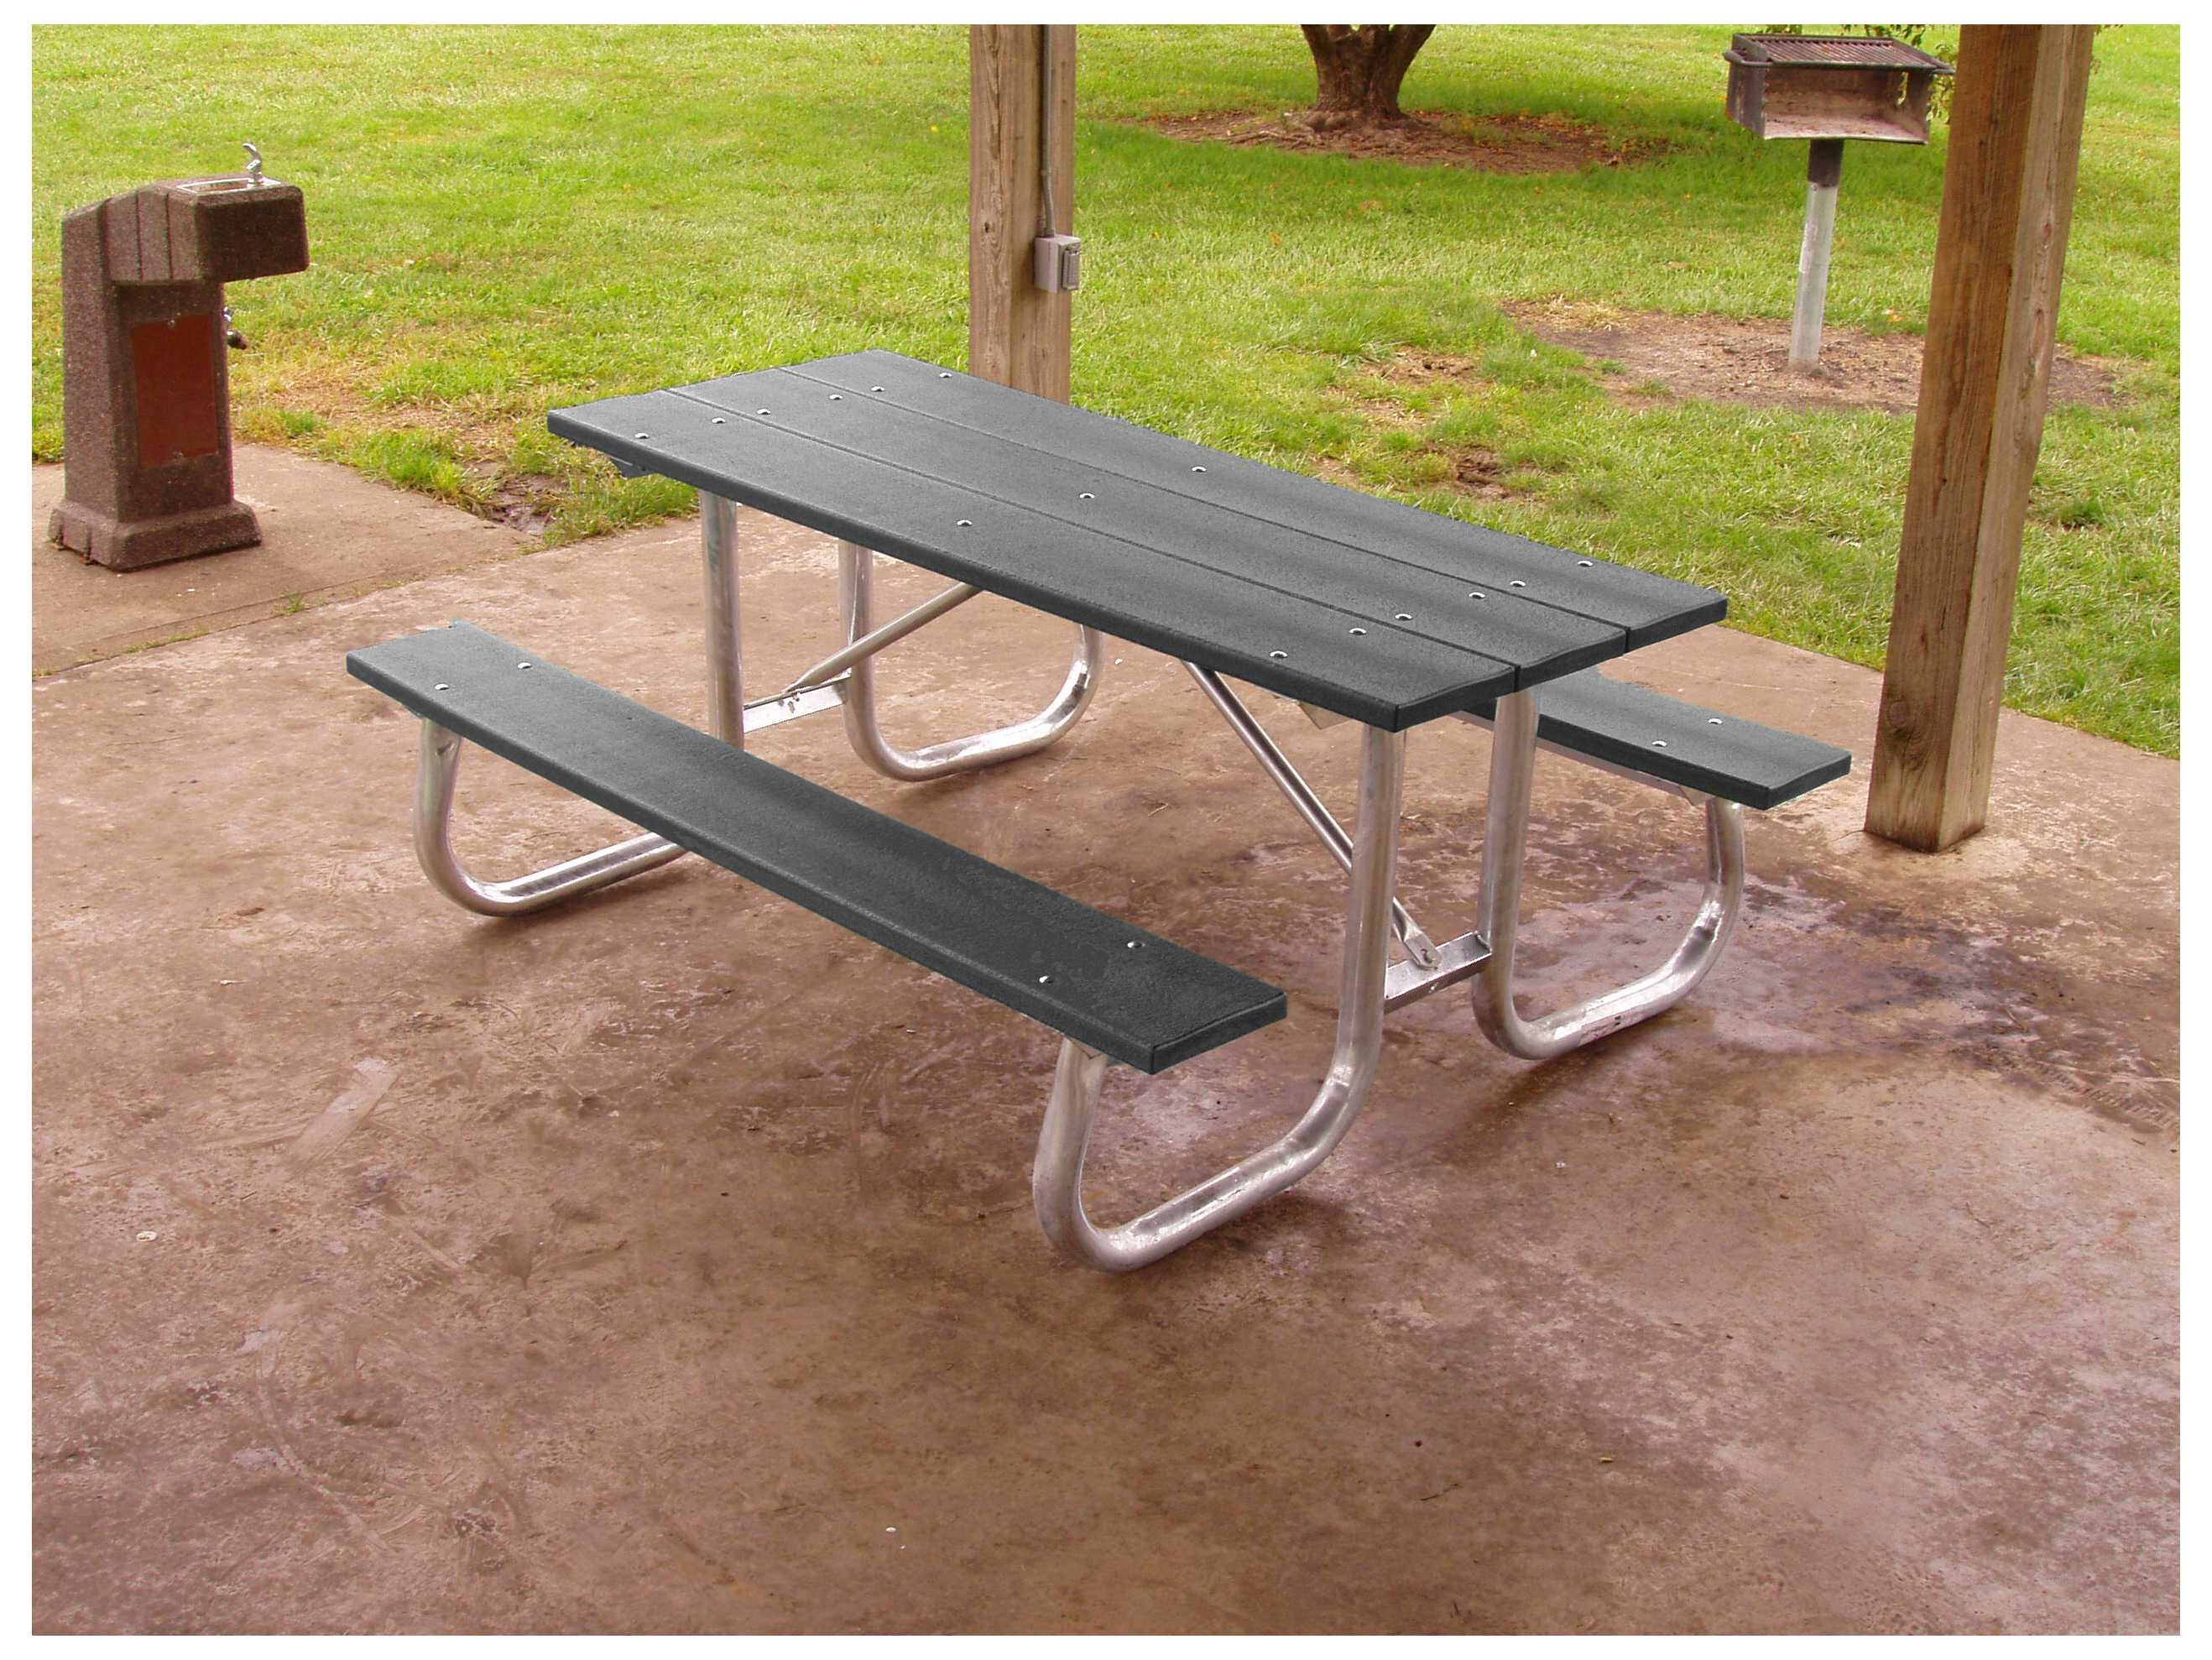 Frog Furnishings Galvanized Steel Recycled Plastic Ft X - 96 picnic table